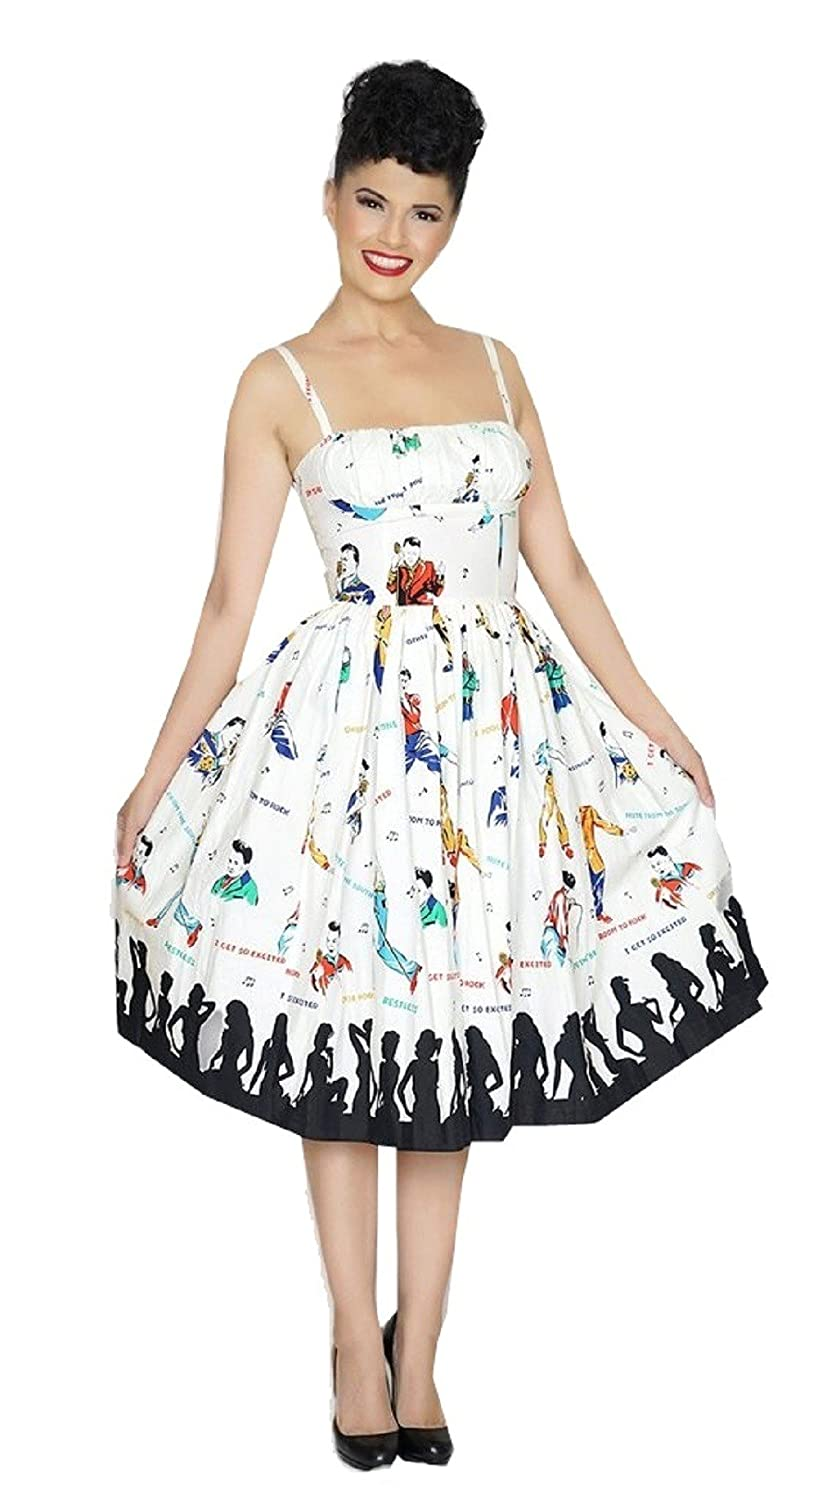 1950s Inspired Fashion: Recreate the Look Bernie Dexter Paris Dress In Rockabilly Idol Print Retro Inspired $172.00 AT vintagedancer.com